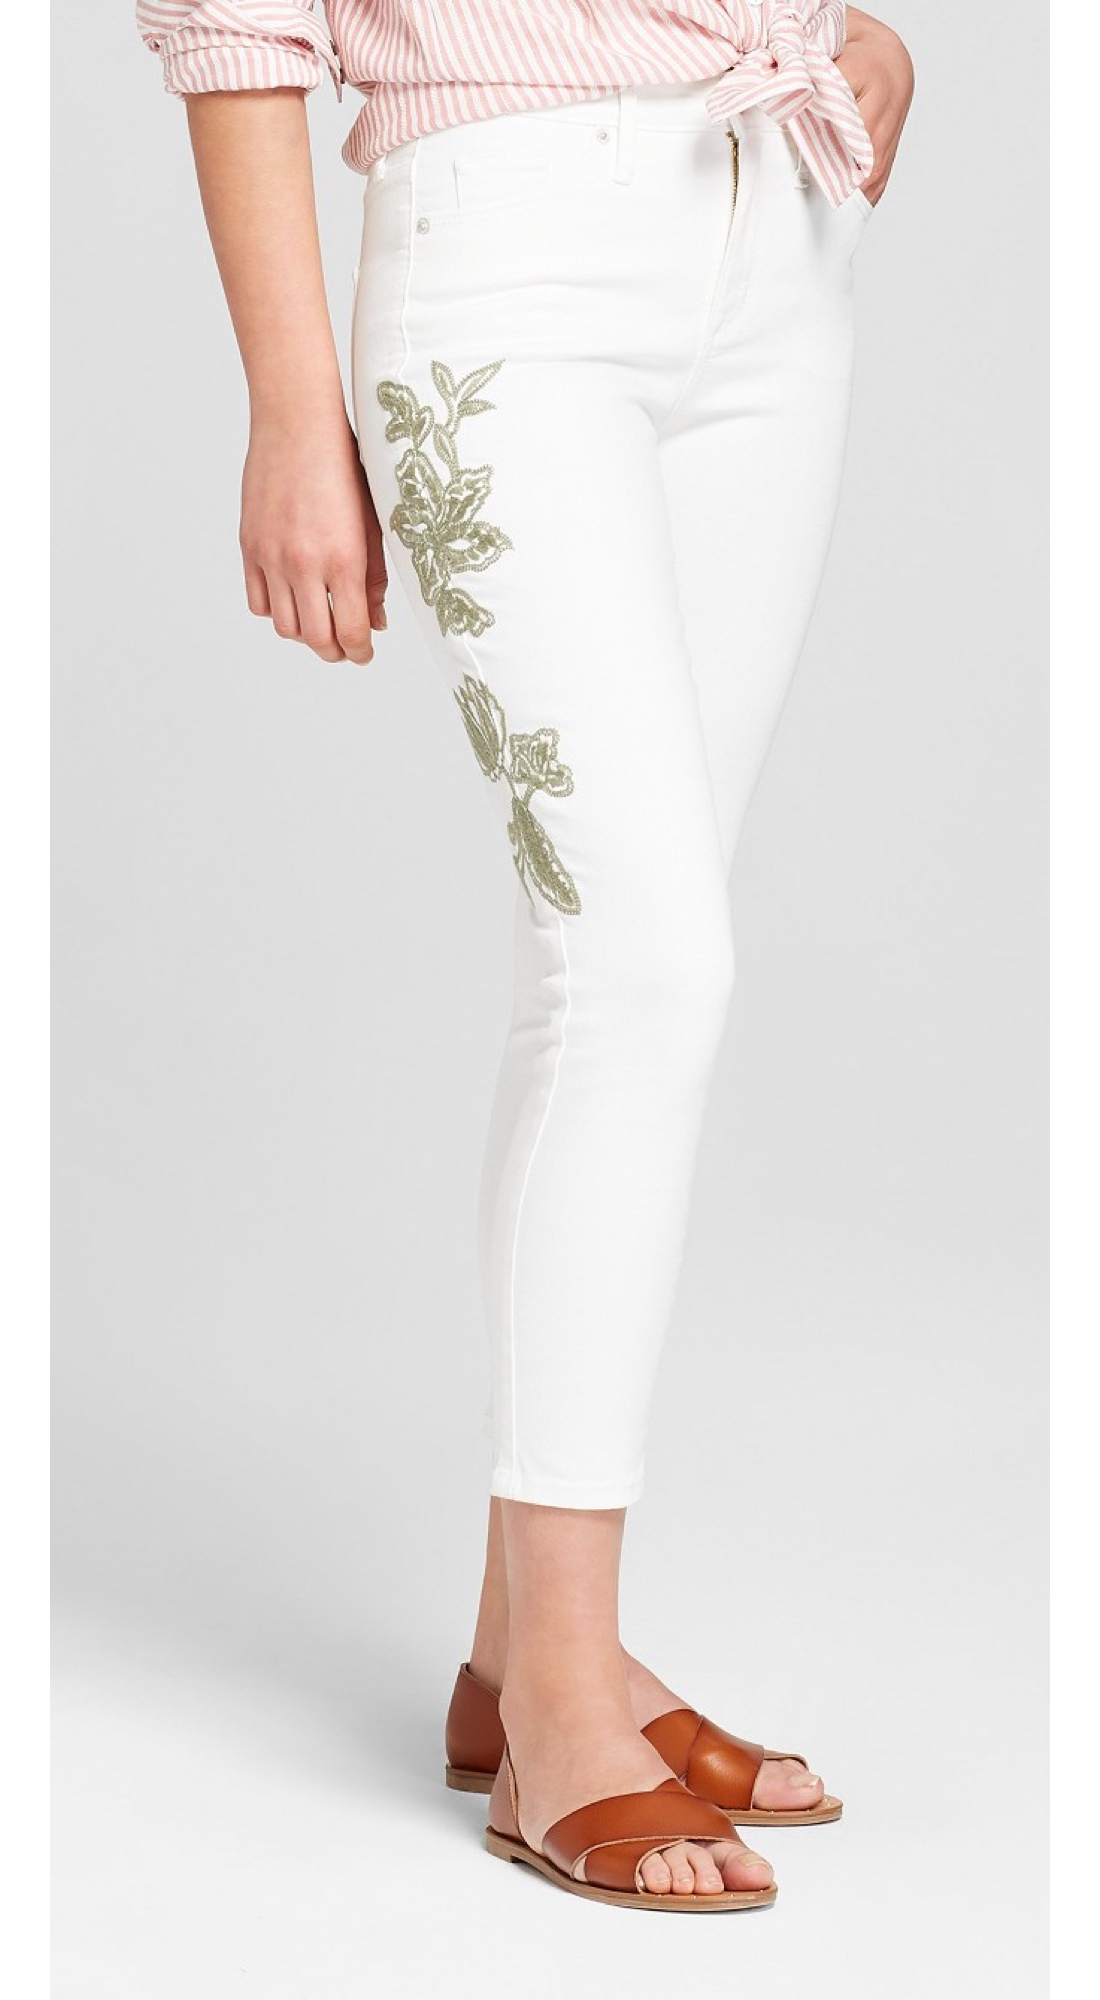 Women's High-Rise Embroidered Skinny Crop Jeans - Universal Thread™ White